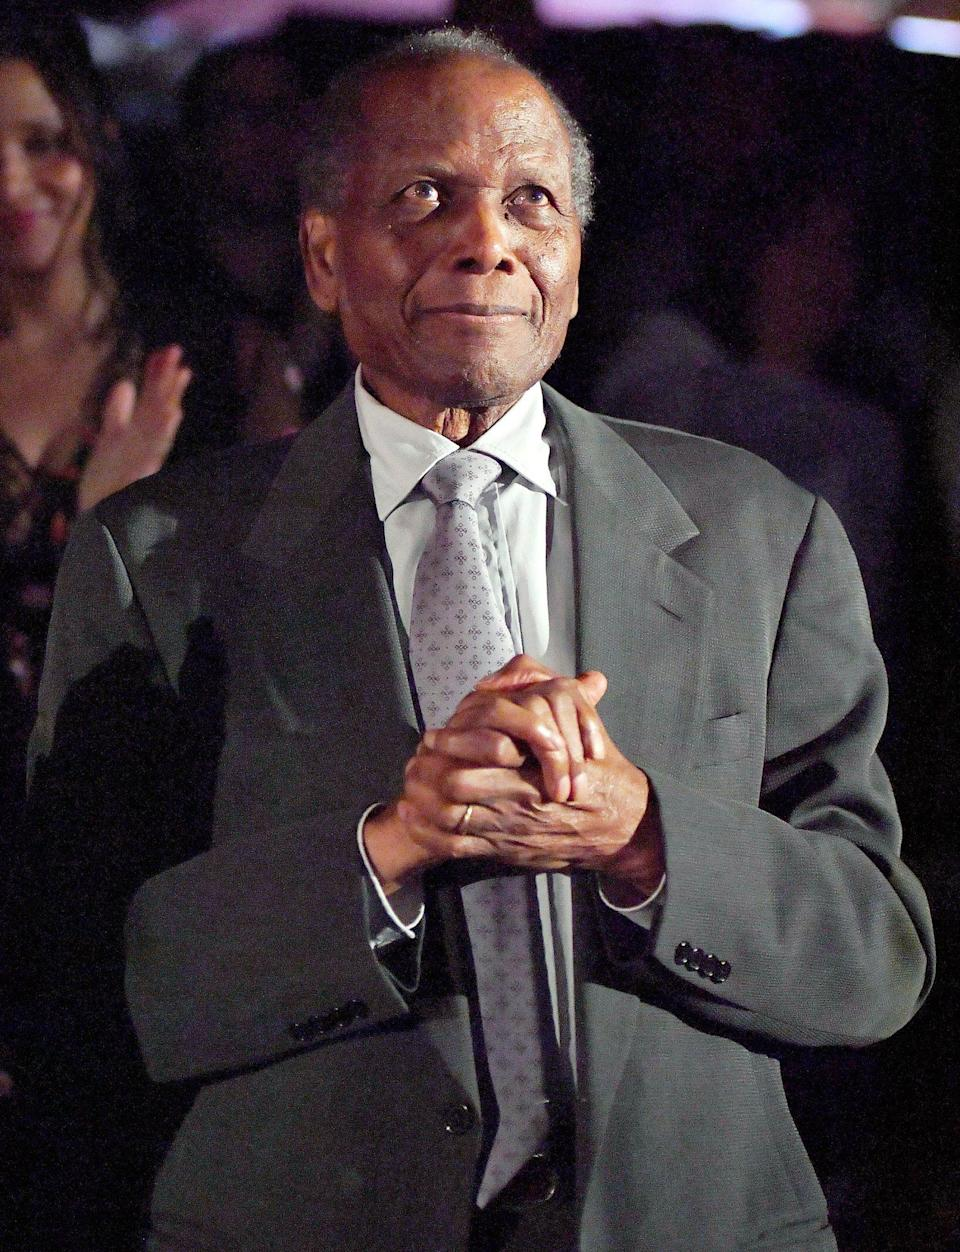 <p>Now 94, Poitier made a rare public appearance at the 50th anniversary screening of <em>In the Heat of the Night</em> during the 2017 TCM Classic Film Festival in L.A.</p>